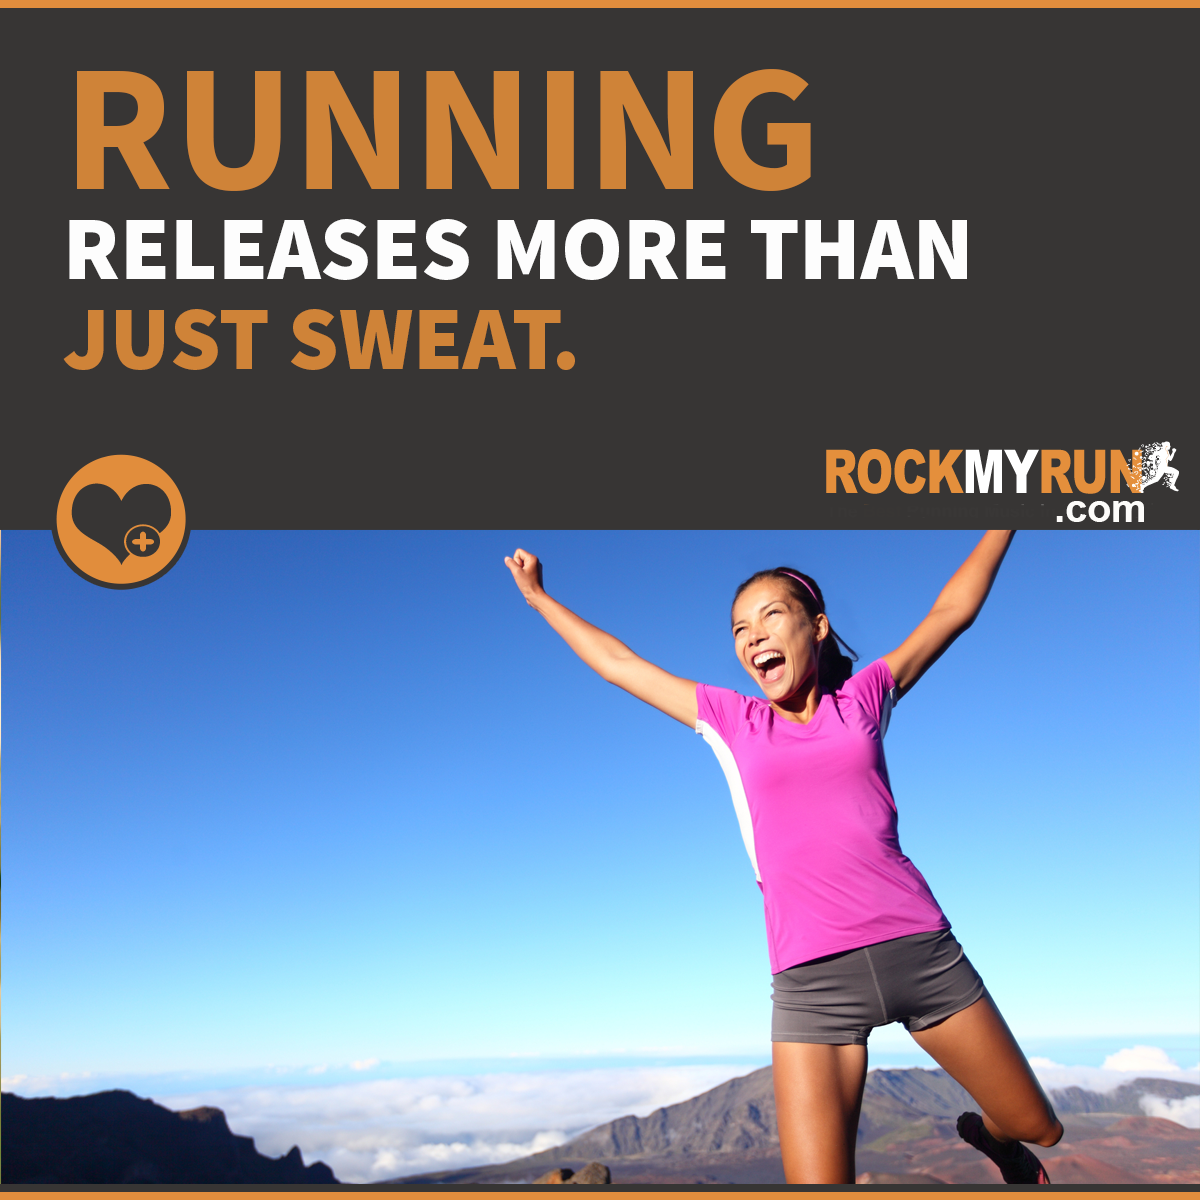 Why We Run: The Physical and Psychological Benefits